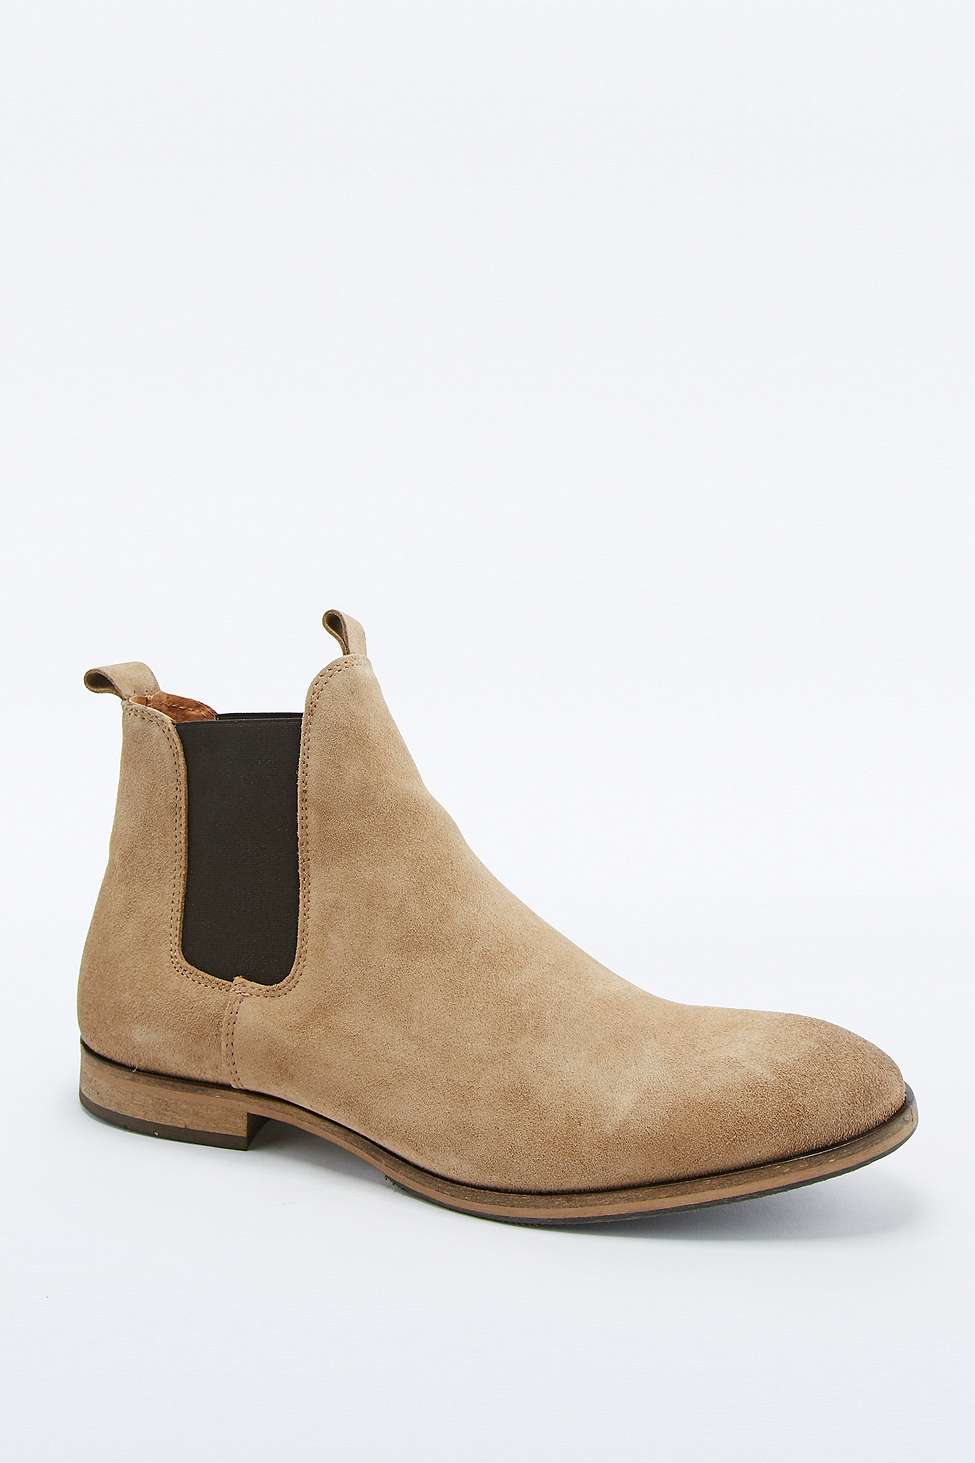 selected bolton sand suede chelsea boots in gray for